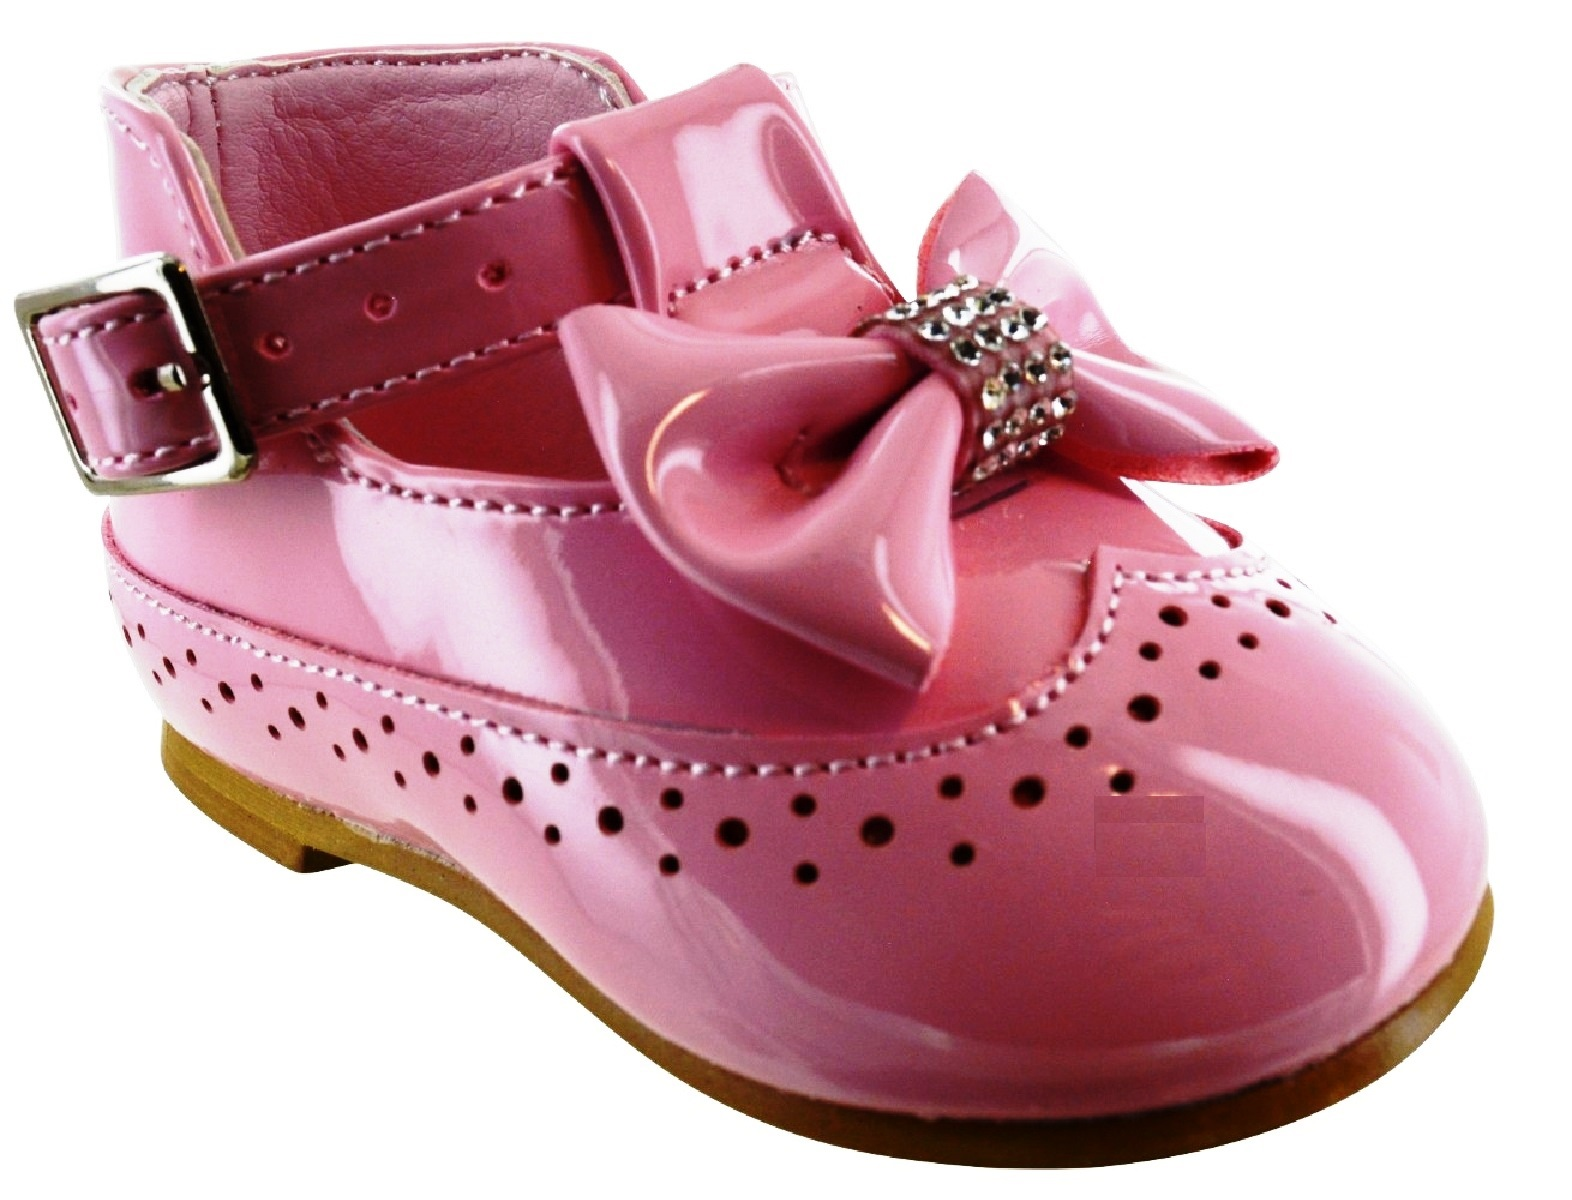 KIDS GIRLS INFANTS BABY DIAMNATE BOW PATENT SPANISH WEDDING PARTY TOODLER SHOES